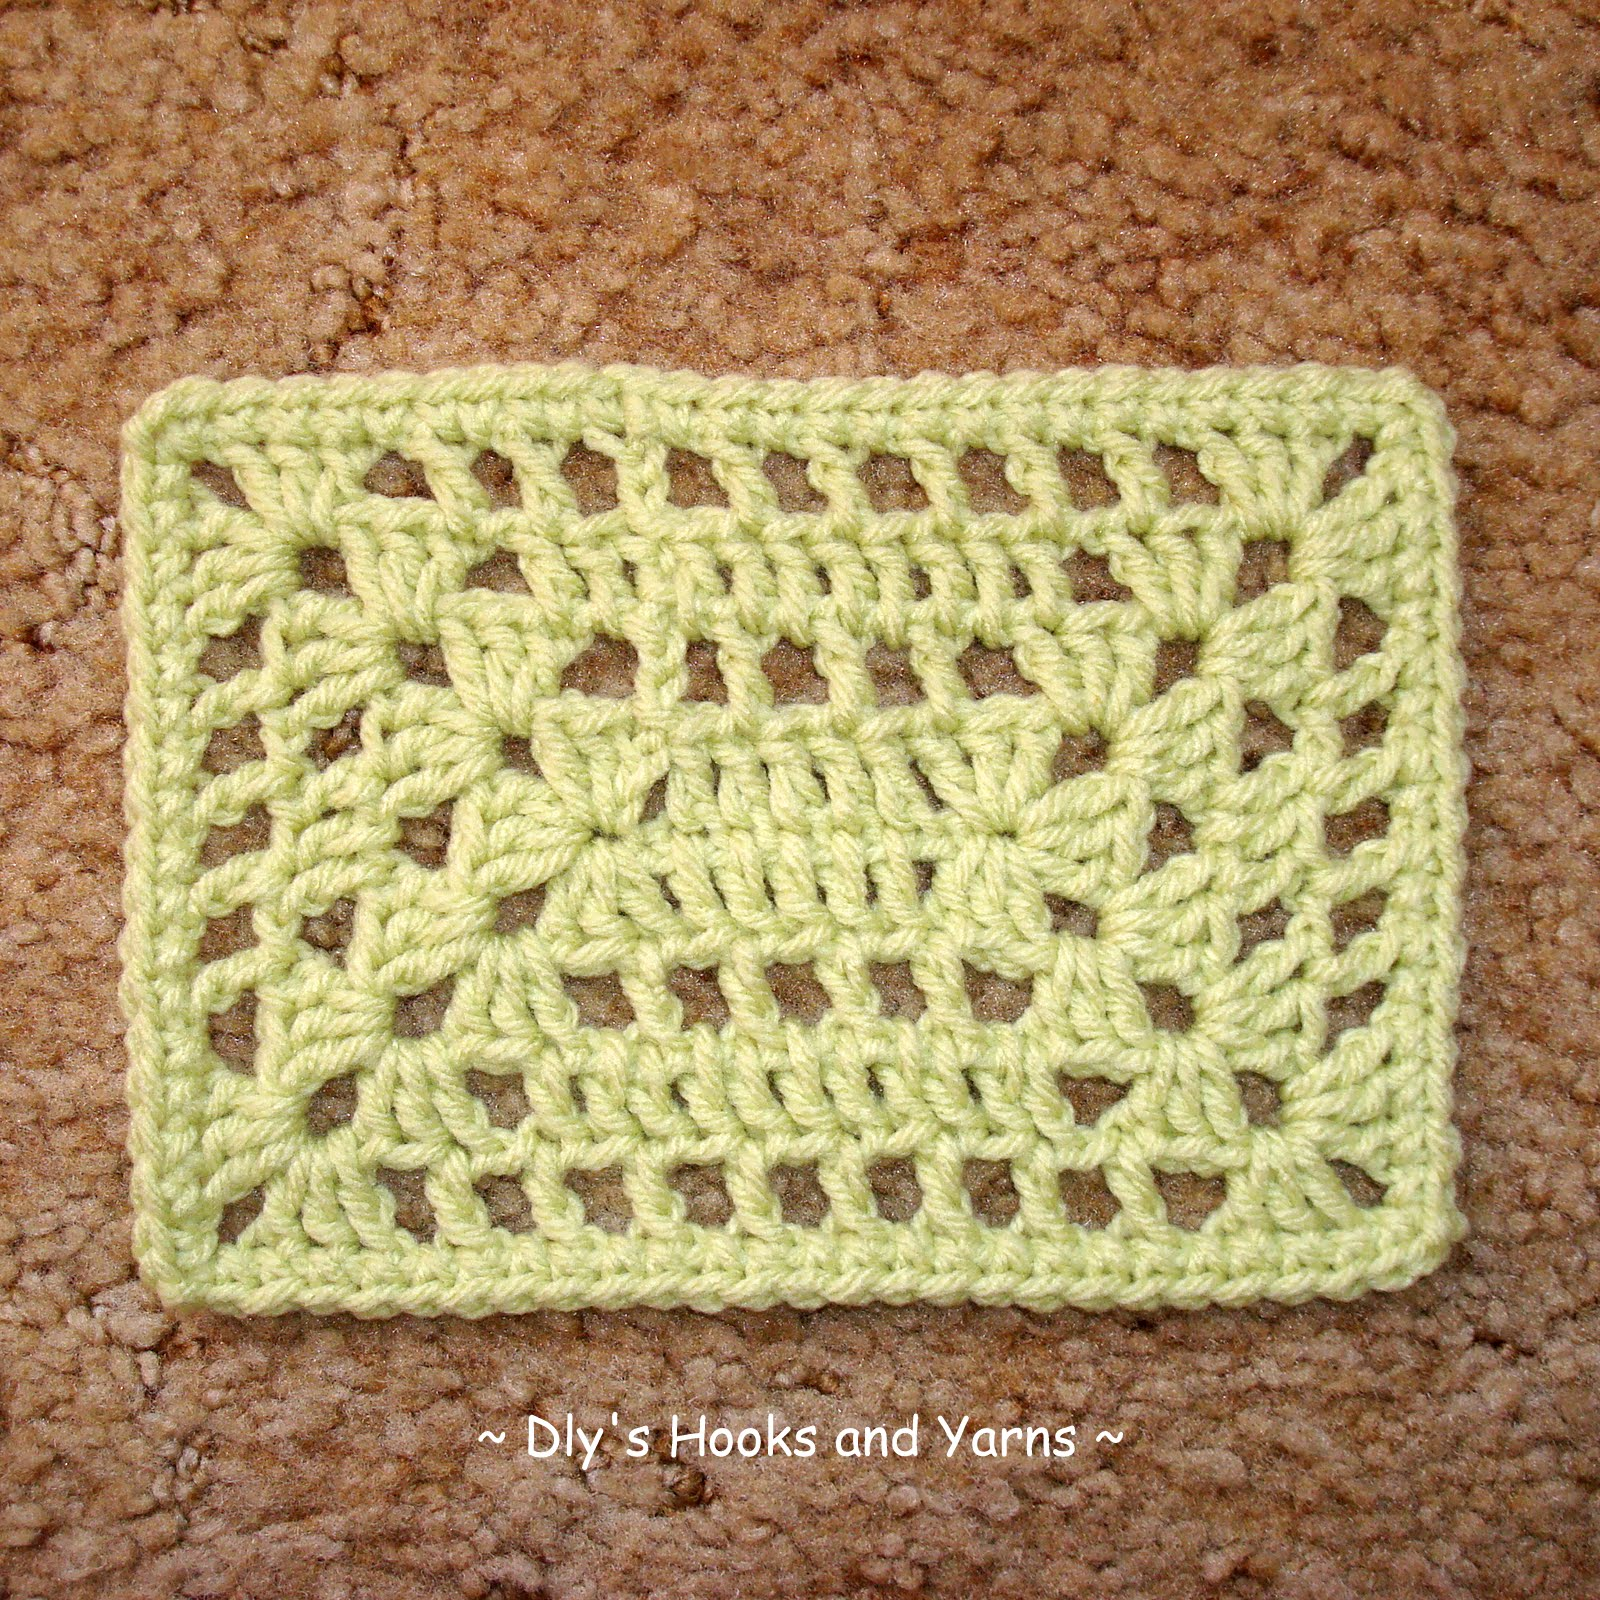 ... Hooks and Yarns ~: ~ poncho update, granny squares & a rectangle